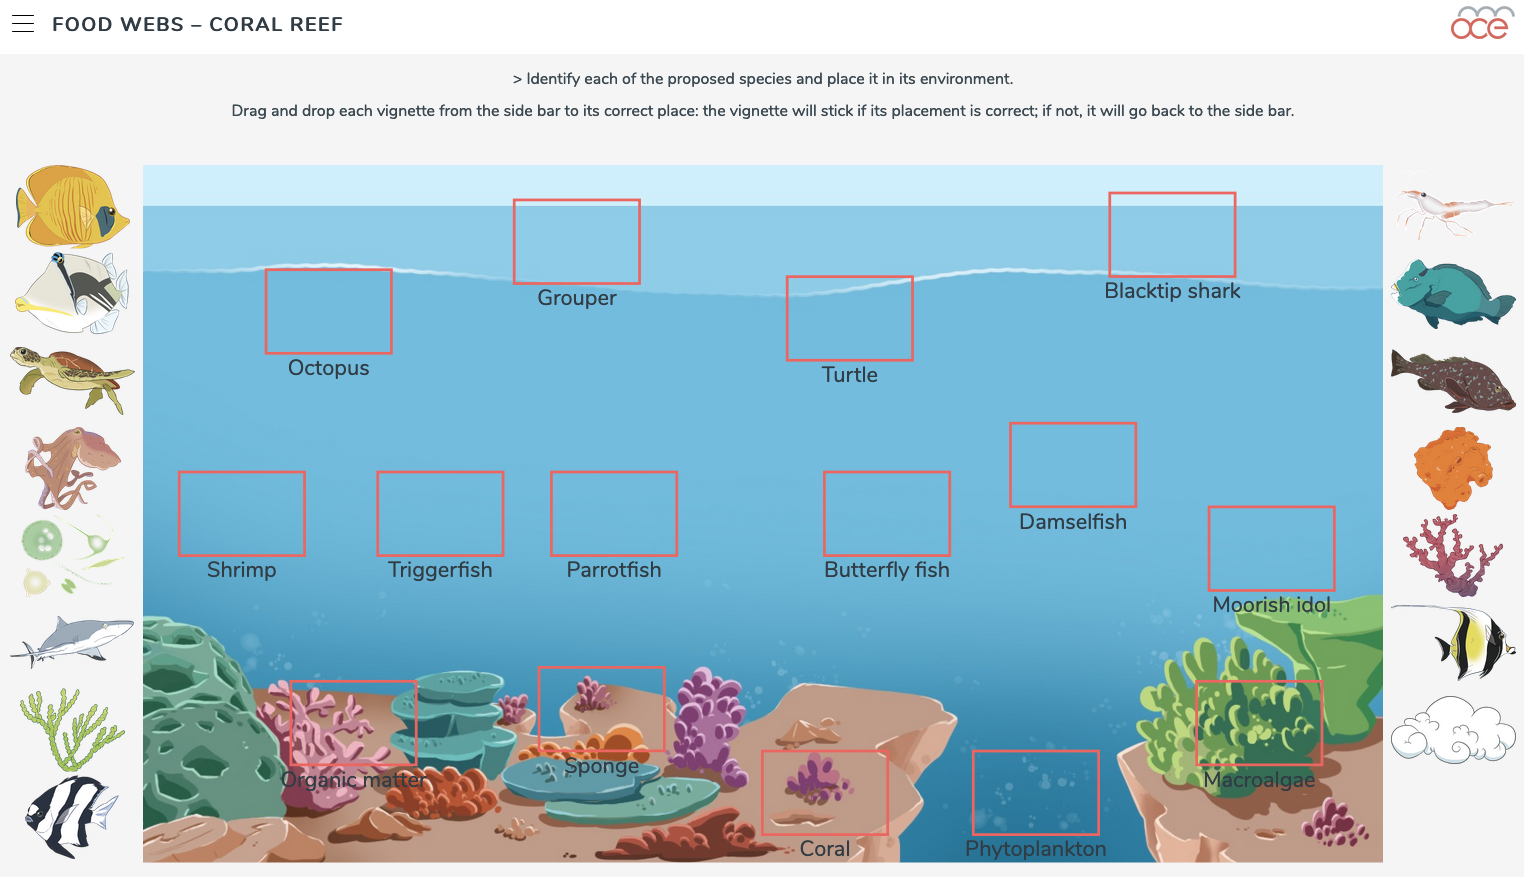 coral reef food webs image